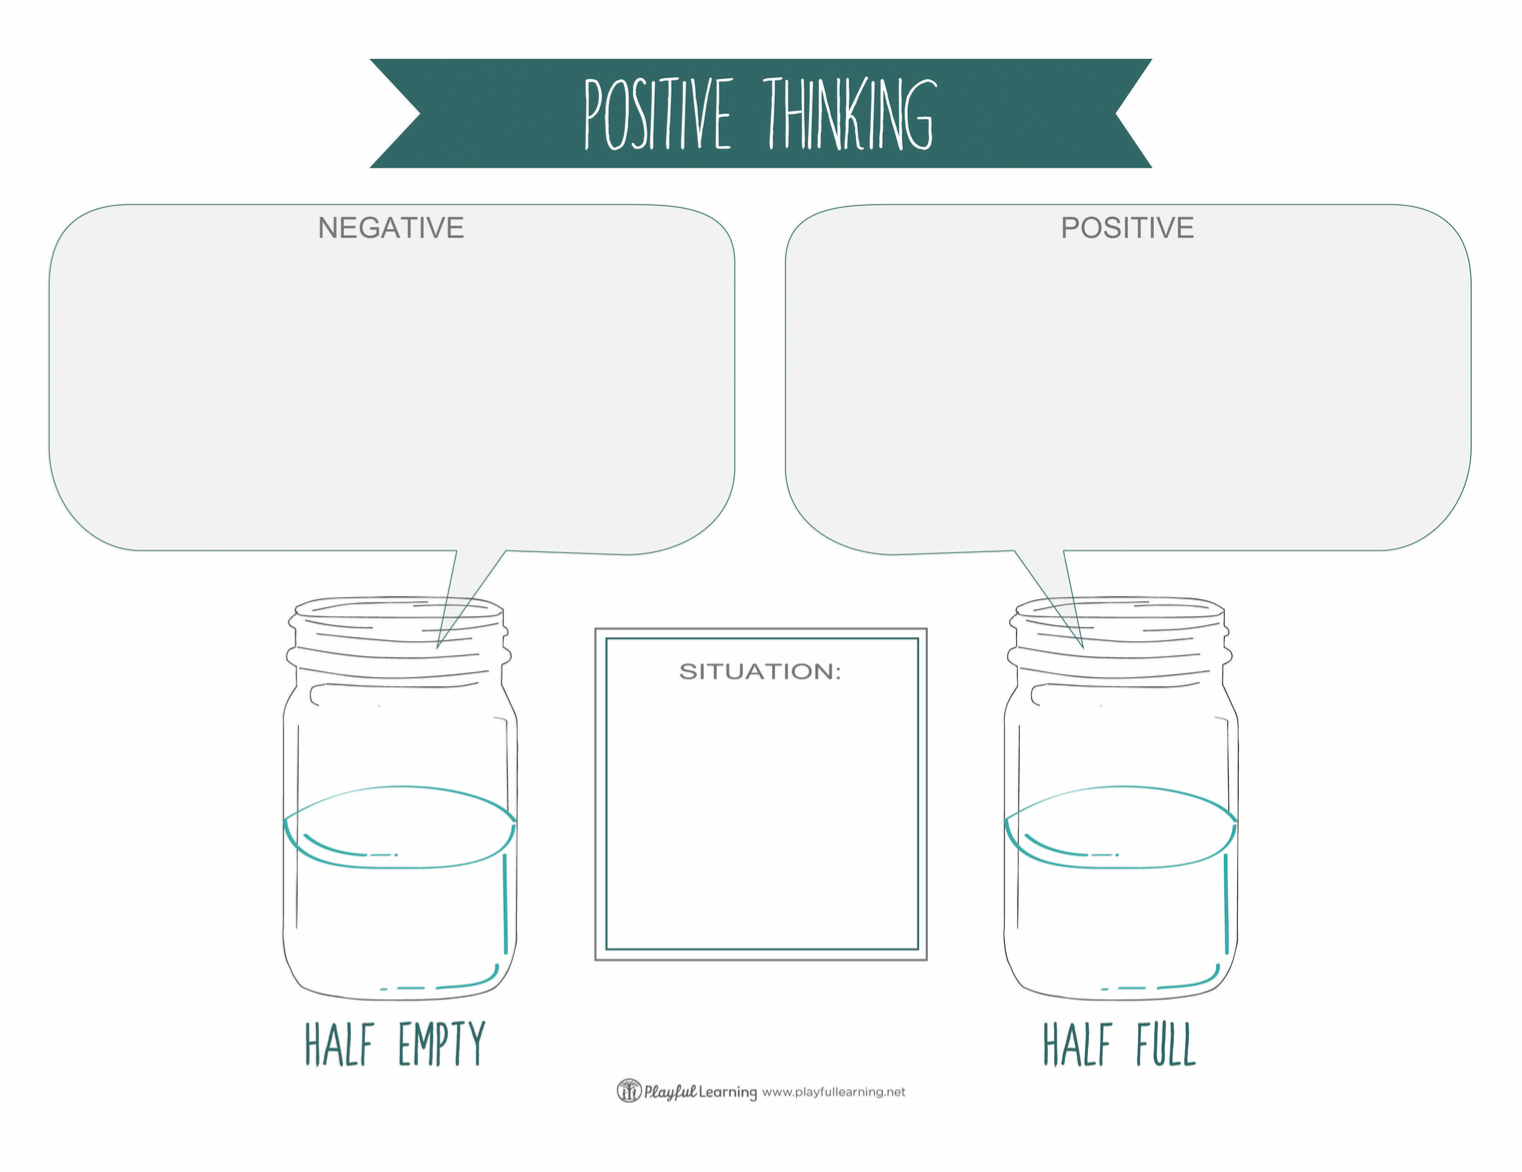 Glass Half Full The Power Of Positive Thinking Playful